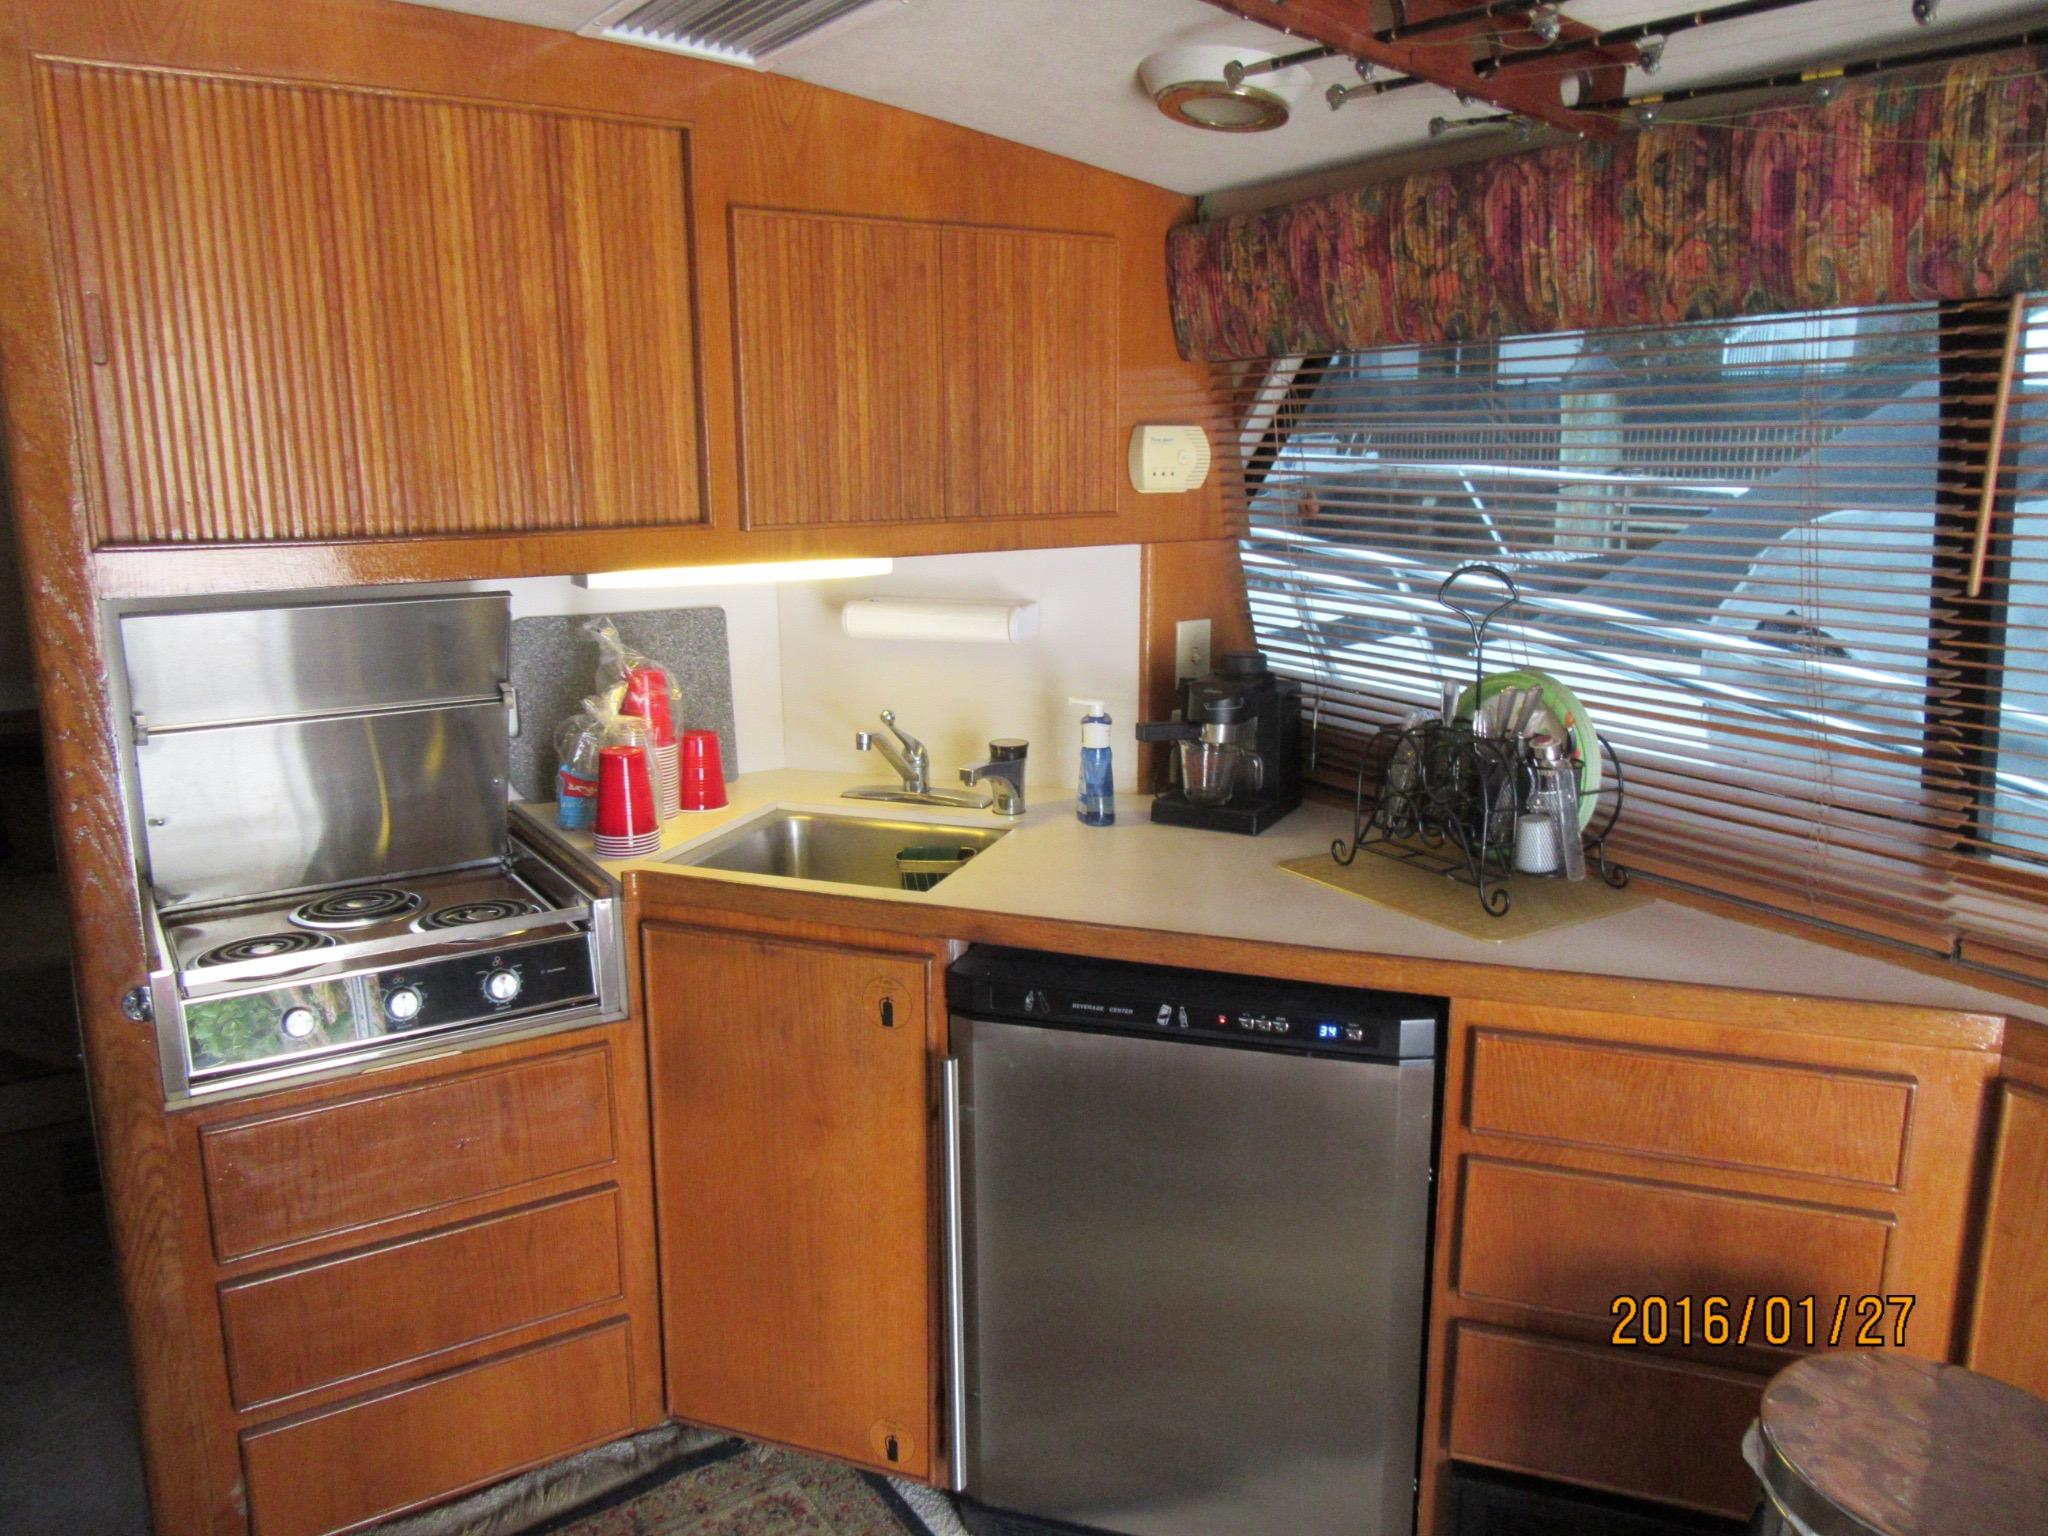 GALLEY - FUNCTIONAL LAYOUT AND AMPLE CABINETS & DRAWERS